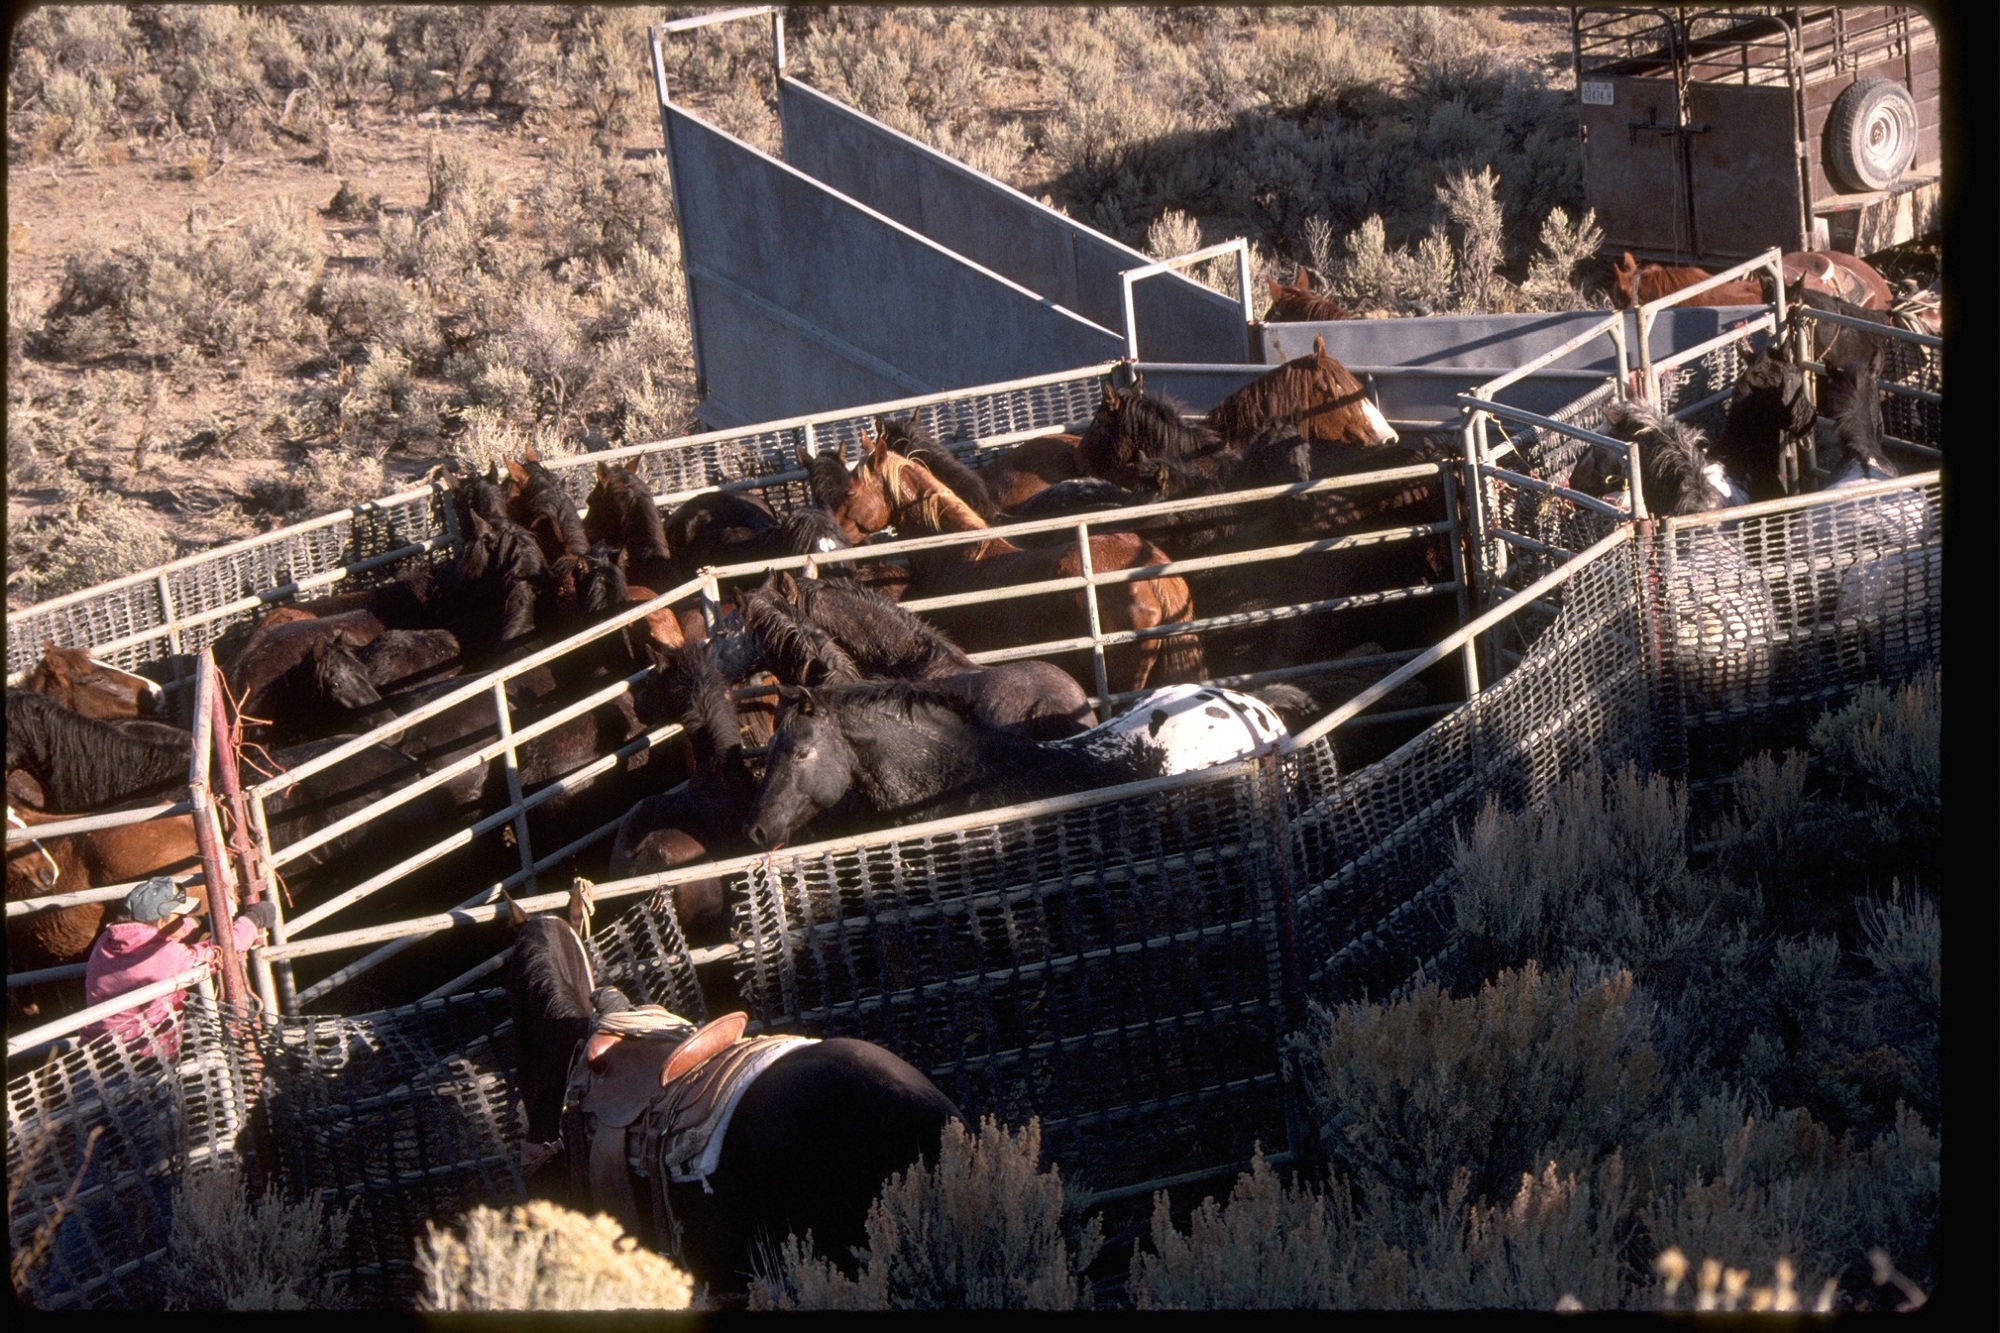 wild horse round up in nevada essay Animal rights groups sue over planned wild horse roundup in nevada  say is an unprecedented federal plan to capture thousands of wild horses over 10 years in nevada  library will keep up .